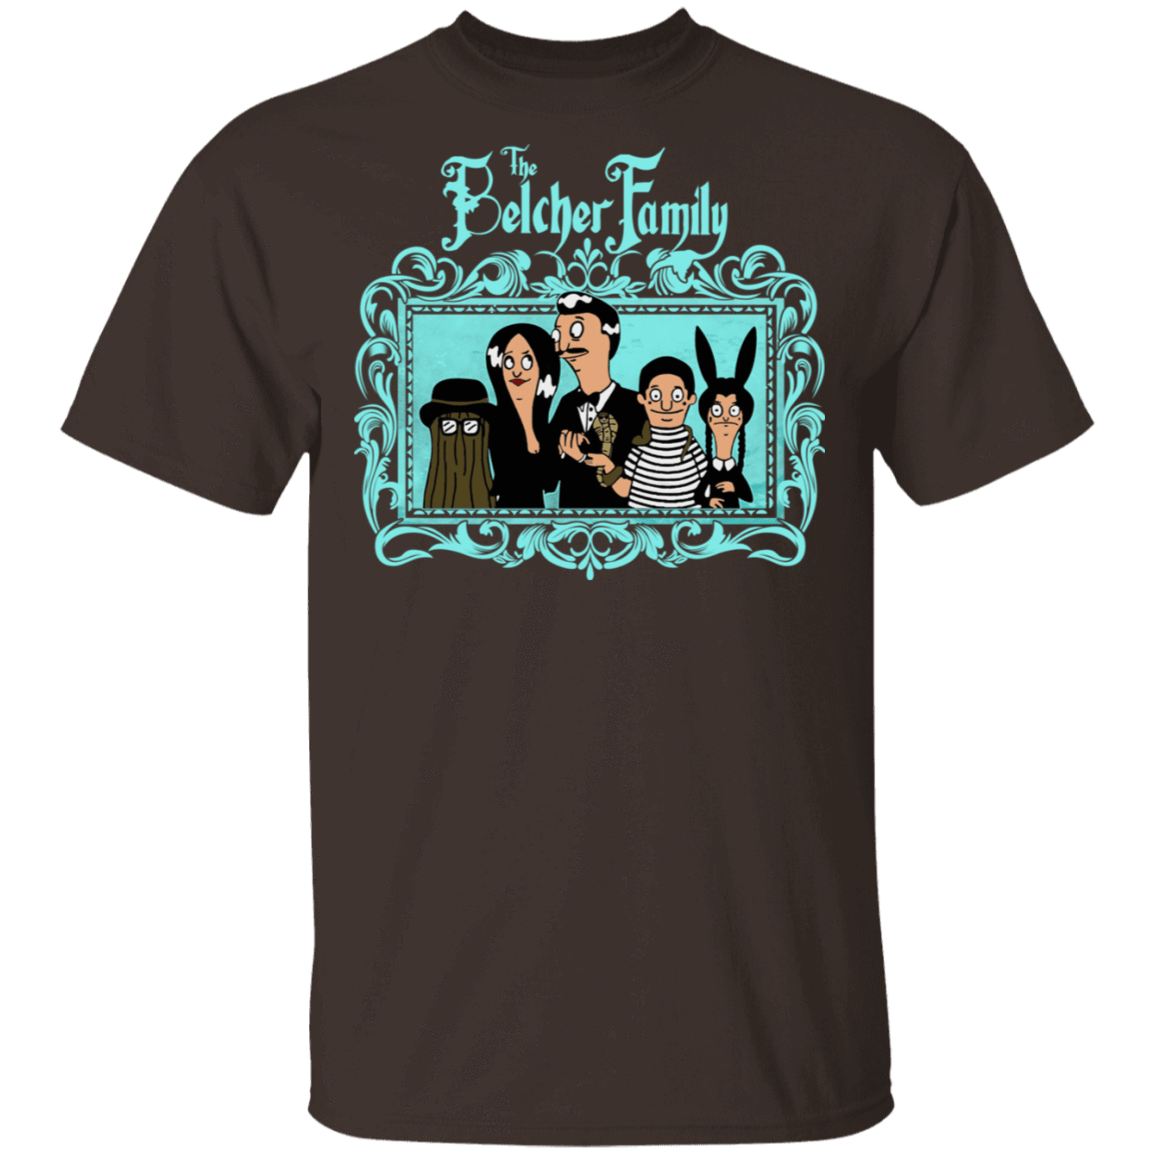 The Belcher Family Bob's Burgers T-Shirts, Hoodies, Tank 1049-9956-81138119-48152 - Tee Ript